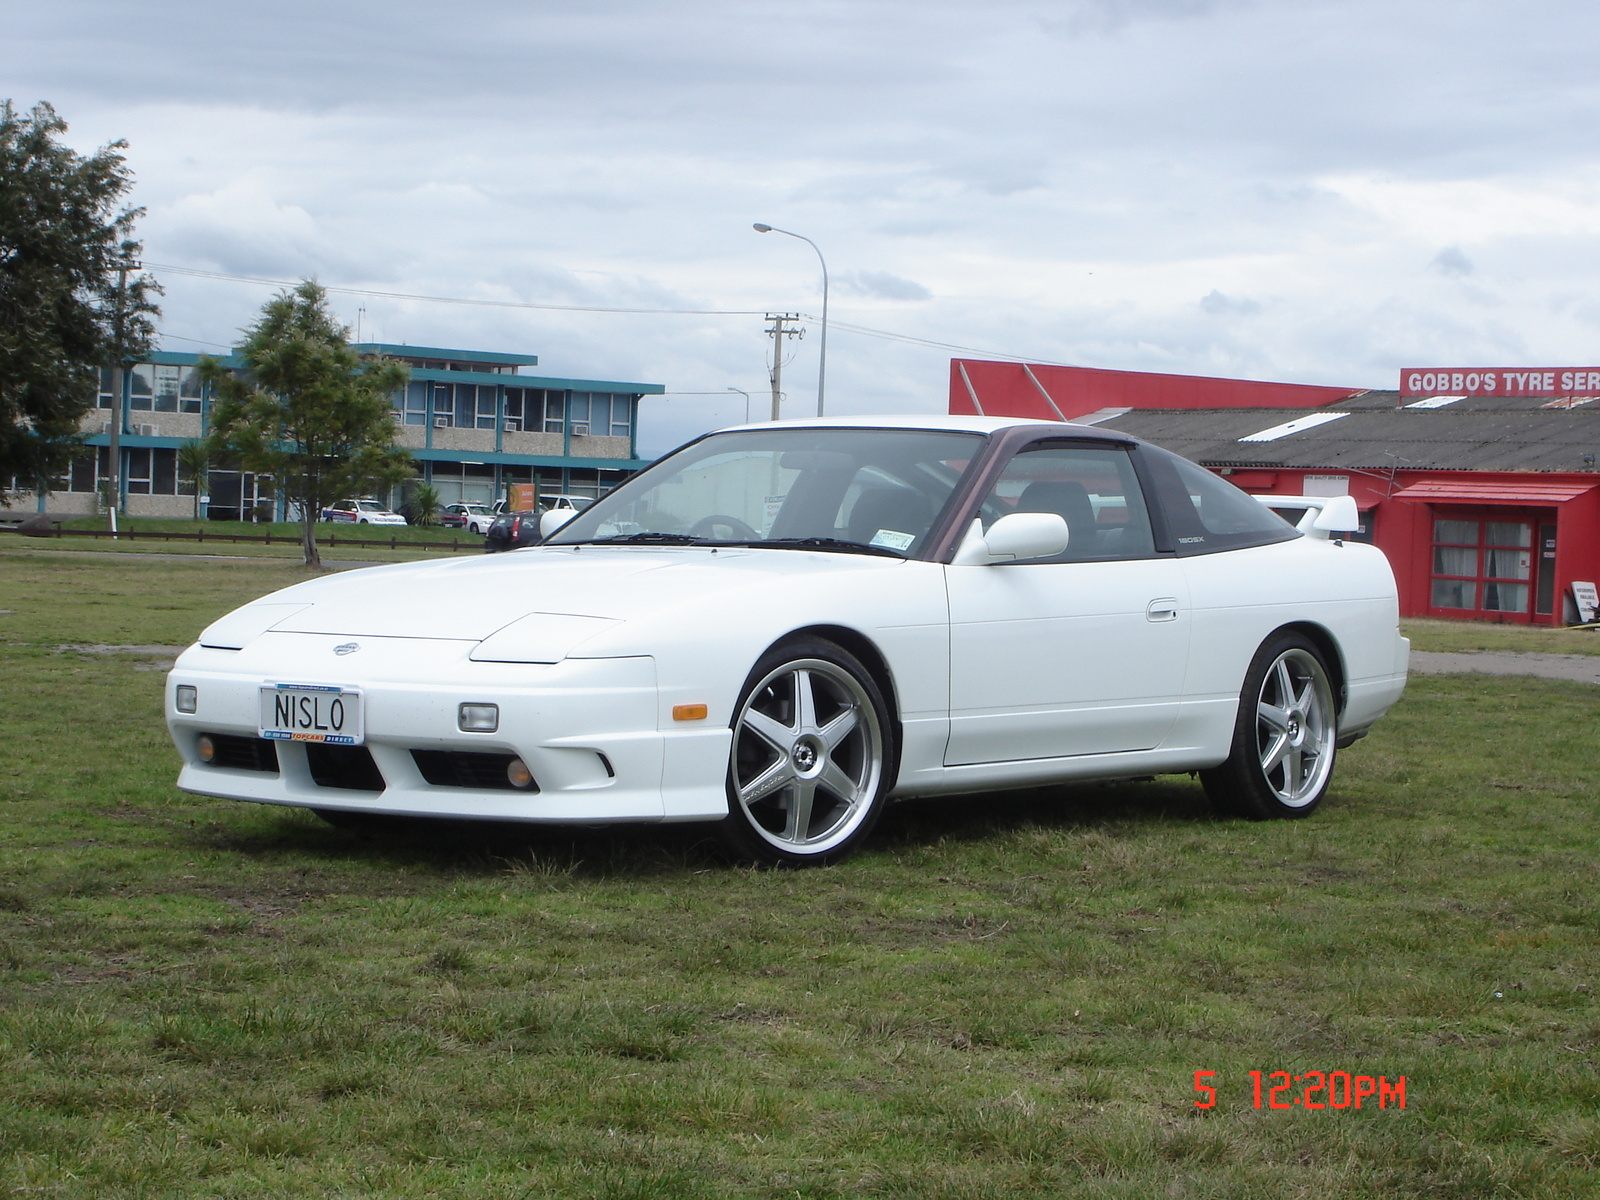 1998 nissan 240sx with 1998 Nissan 180sx Overview C17576 on Watch moreover Mitsubishi likewise FRSport S Coverlay Test Fit Pics For 89 94 240SX S13 t 102 moreover Photo Gallery besides 1995 Nissan Altima Pictures C3060.